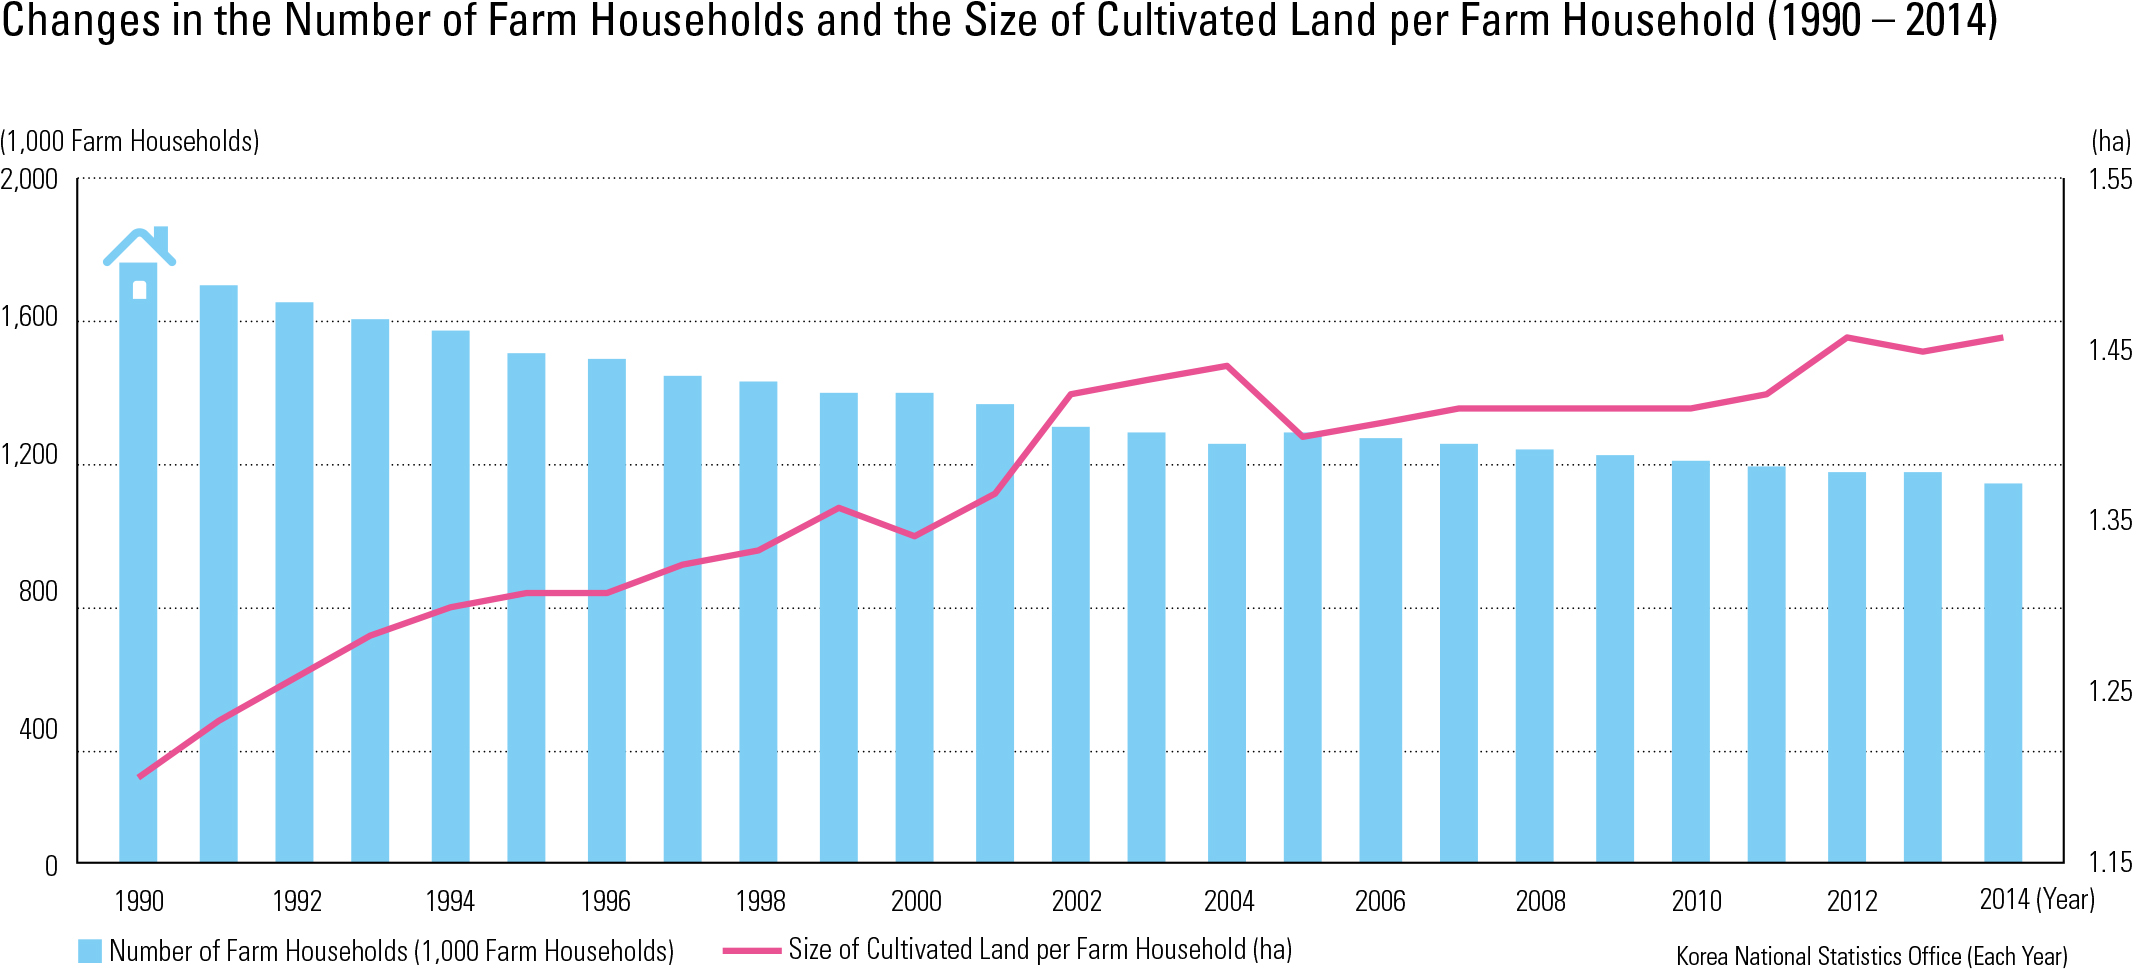 "Changes in the Number of Farm Households and the Size of Cultivated Land per Farm Household (1990 – 2014)<p class=""oz_zoom"" zimg=""http://imagedata.cafe24.com/us_3/us3_158-2_2.jpg""><span style=""font-family:Nanum Myeongjo;""><span style=""font-size:18px;""><span class=""label label-danger"">UPDATE DATA</span></span></p>"